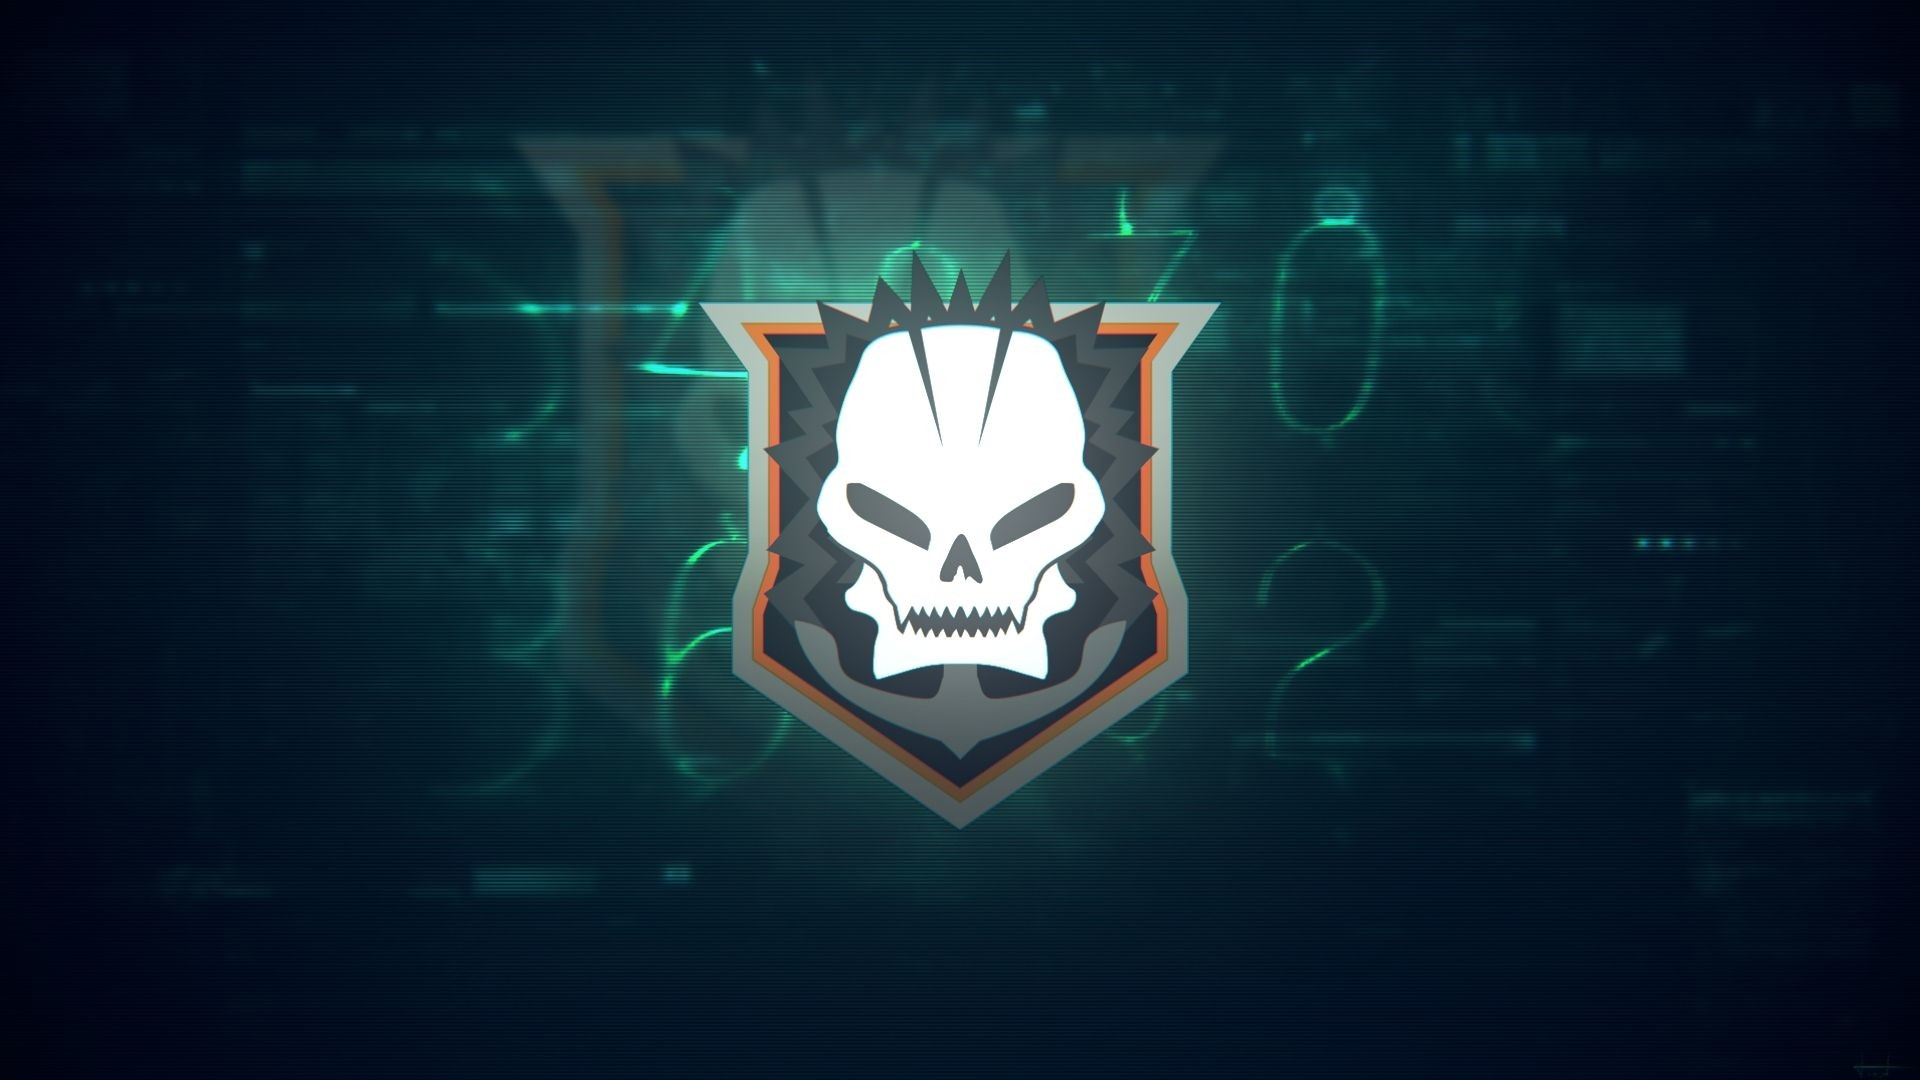 HD WALLPAPERS: Call of Duty Black ops HD Wallpapers 2560×1440 Wallpapers Of  Call